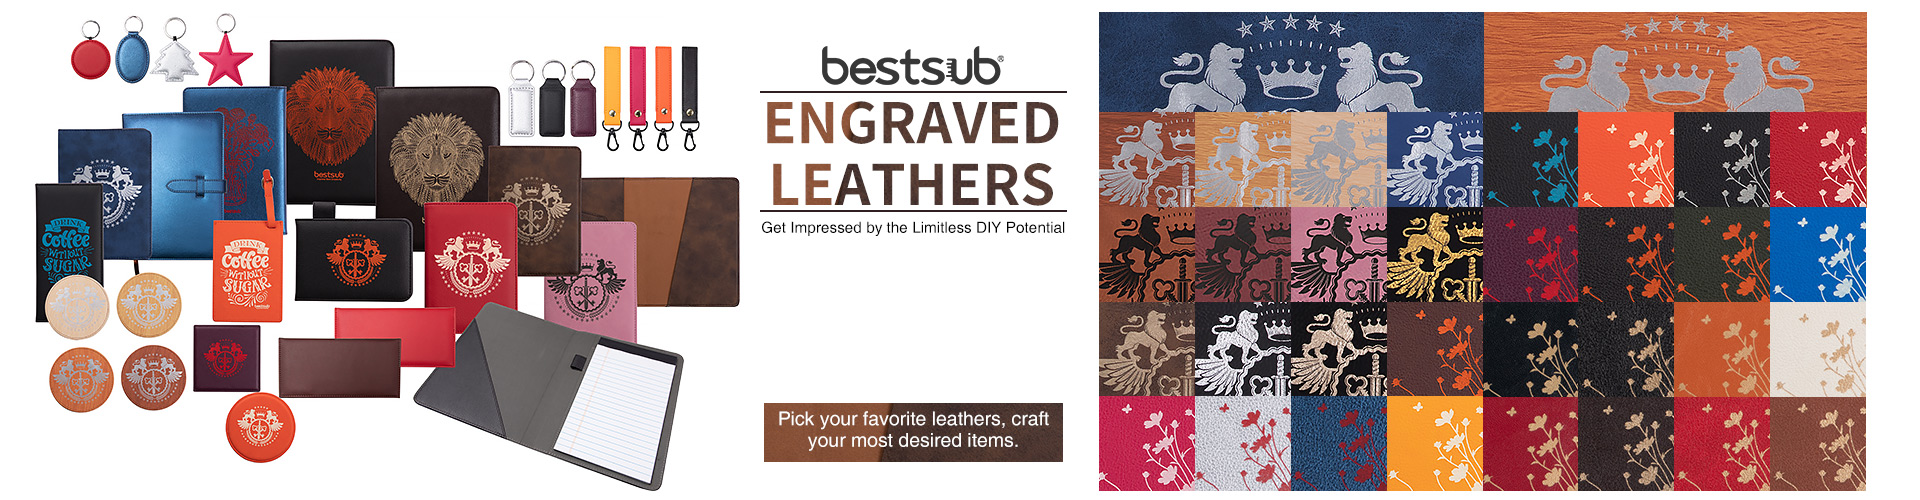 2020-3-10_Engraved_Leather_new_web